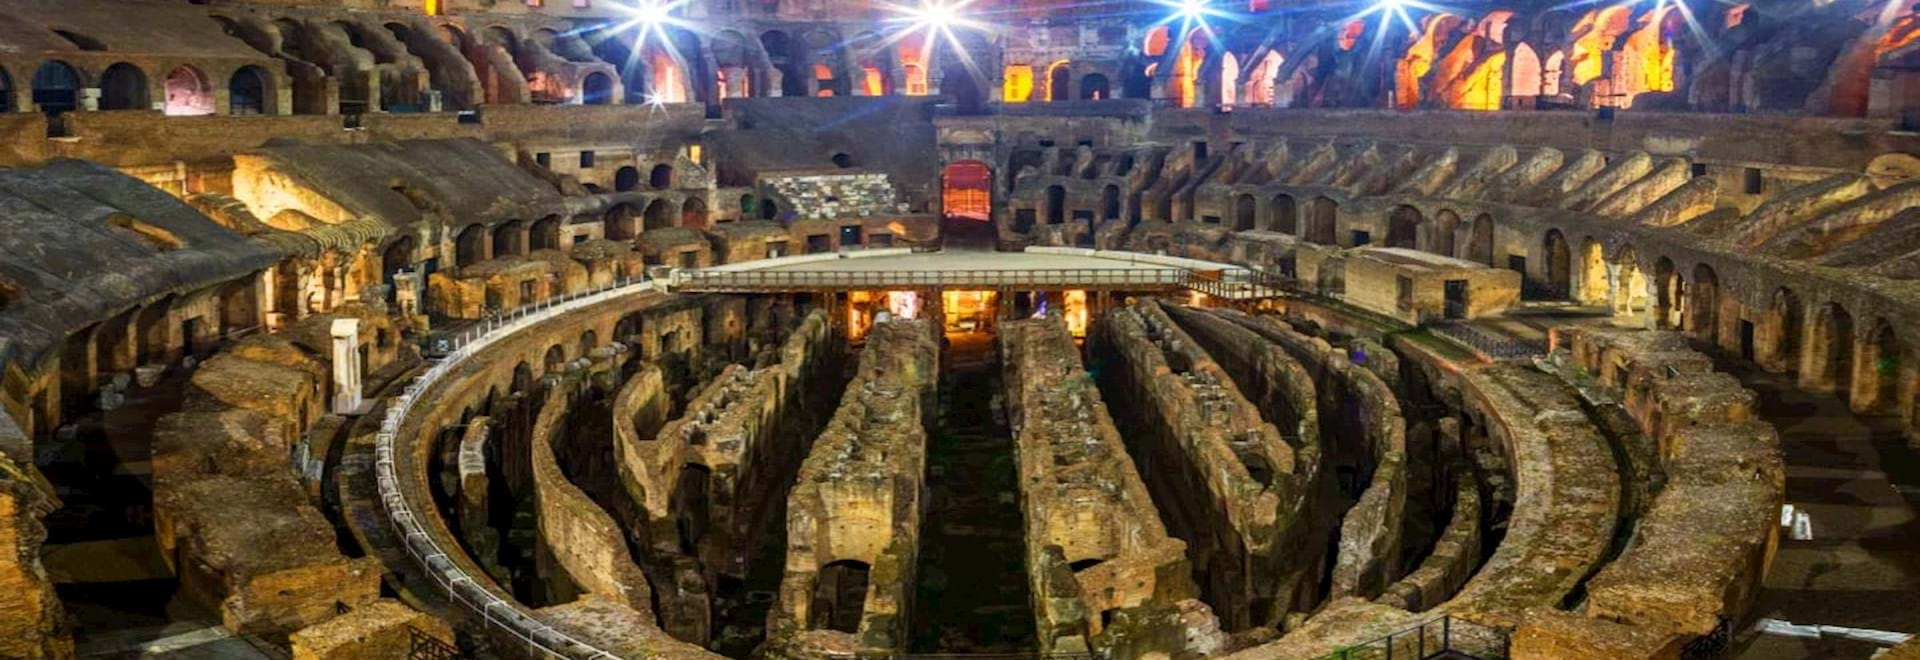 View of the inside of the Colosseum at night